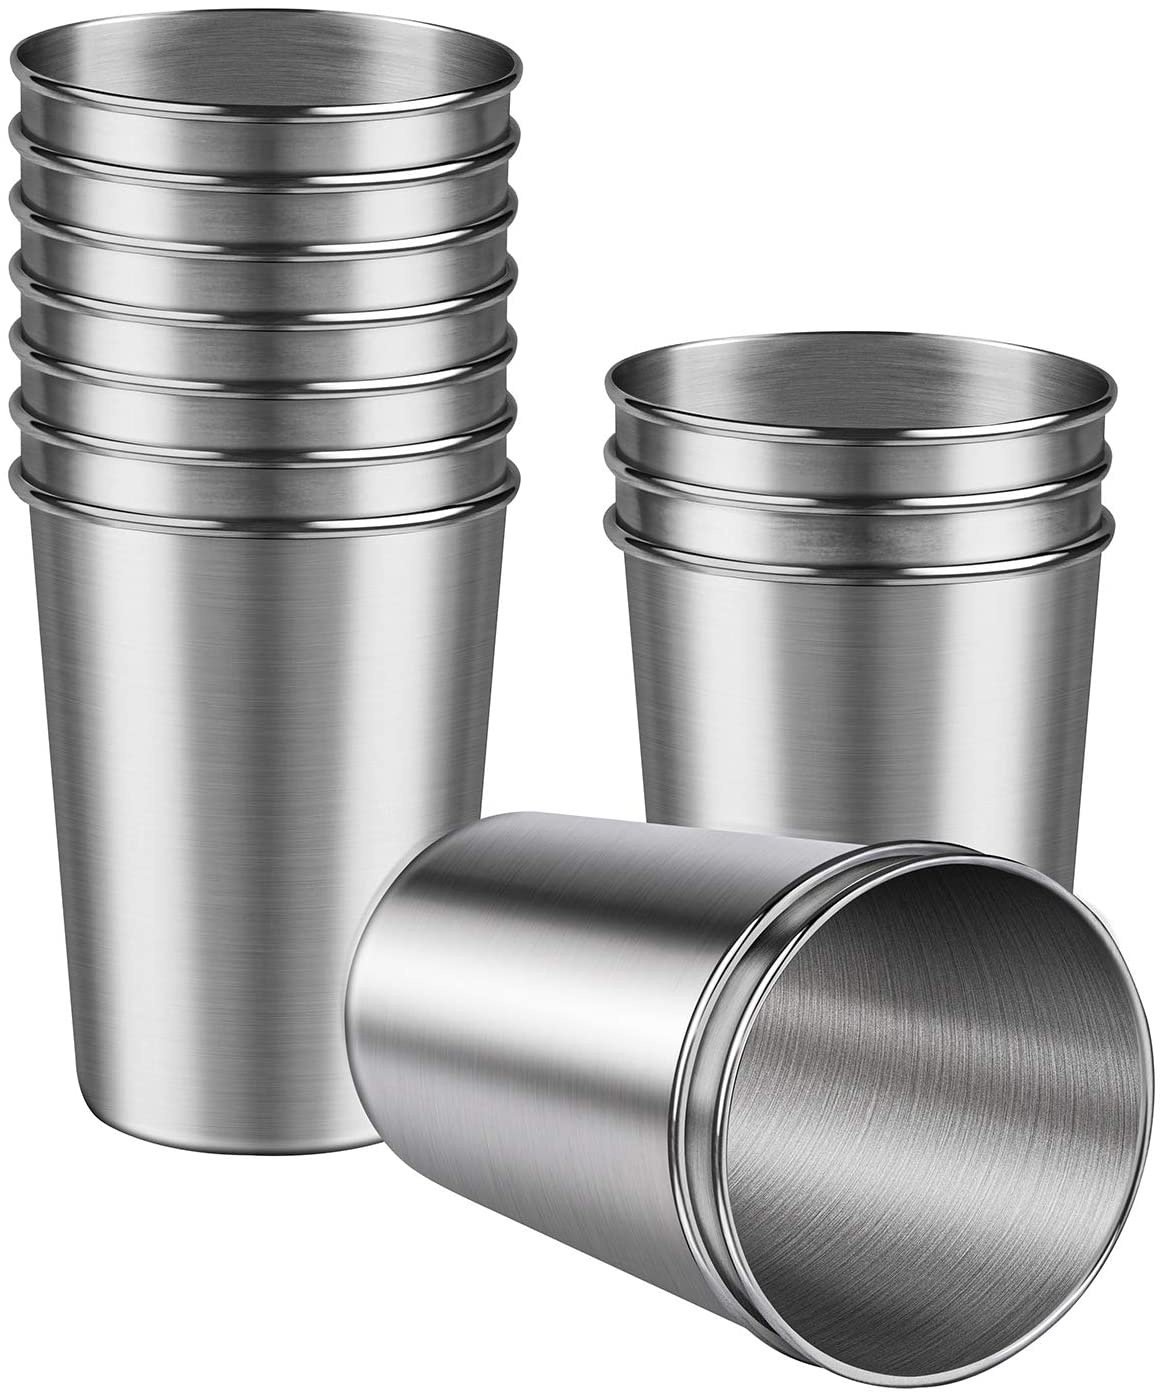 Ruisita 12 Pieces Stainless Steel Shot Cups Stainless Steel Shot Glass Drinking Tumbler (8 Ounce/230 ml)